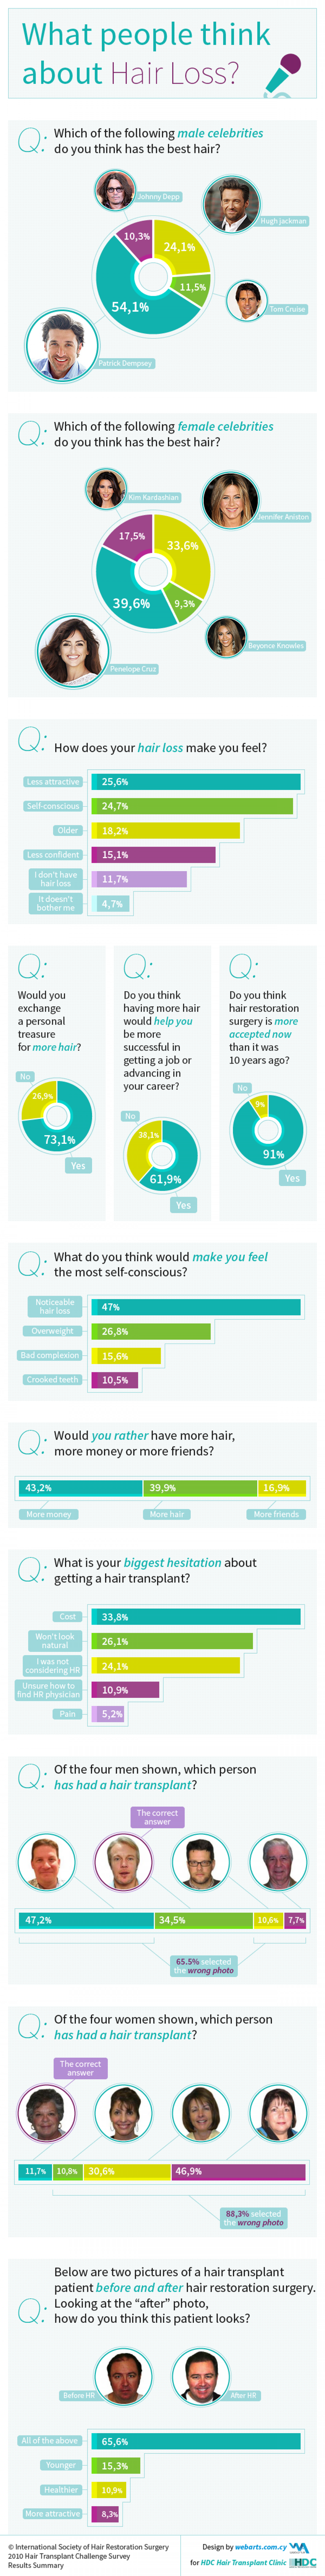 What people think about Hair loss Infographic